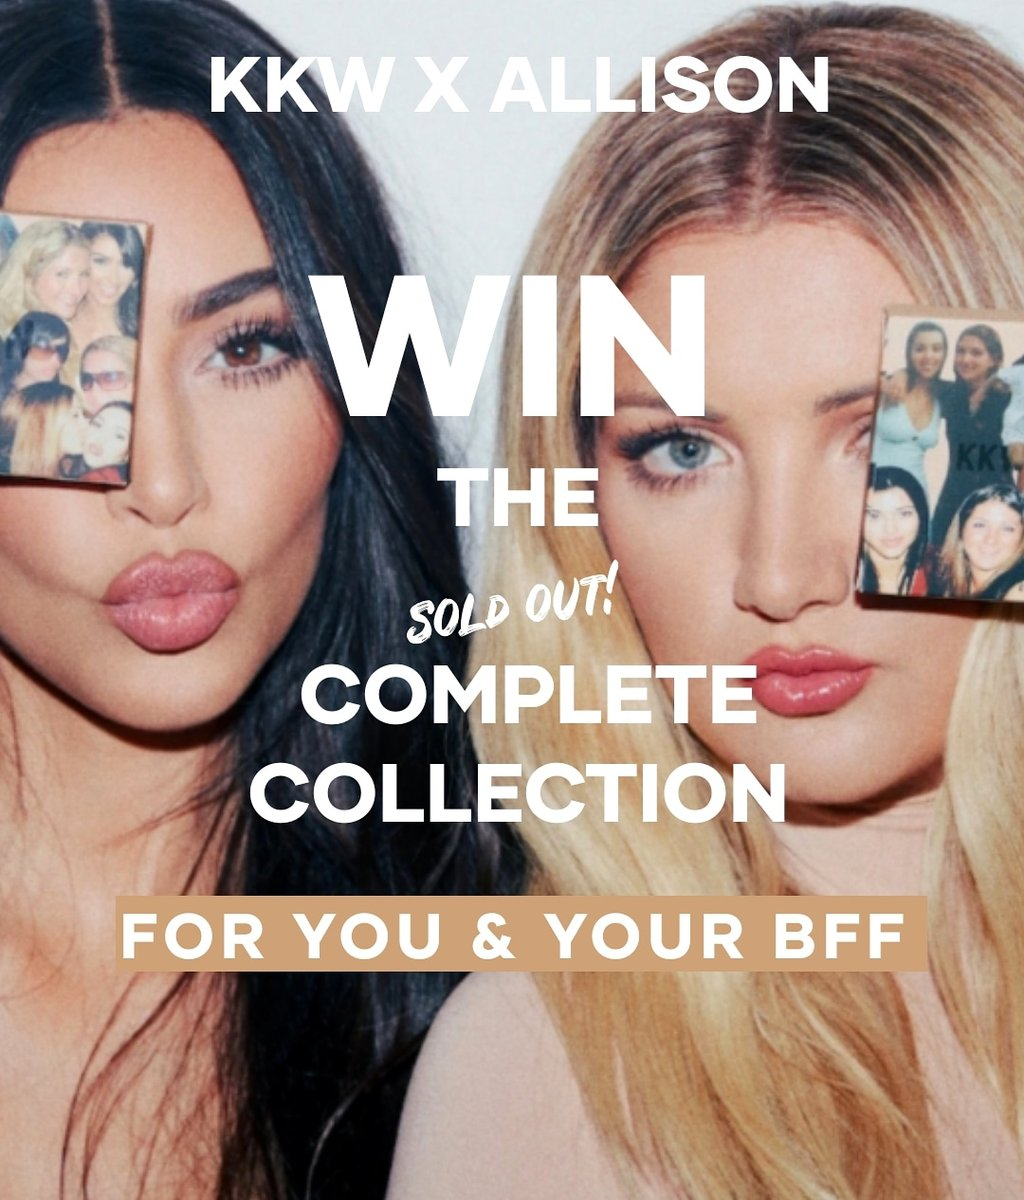 Image for WIN THE (SOLD OUT) KKW X ALLISON COMPLETE COLLECTION FOR YOU & YOUR BFF ✨   Go to our instagram page! https://t.co/VZpTPghV40